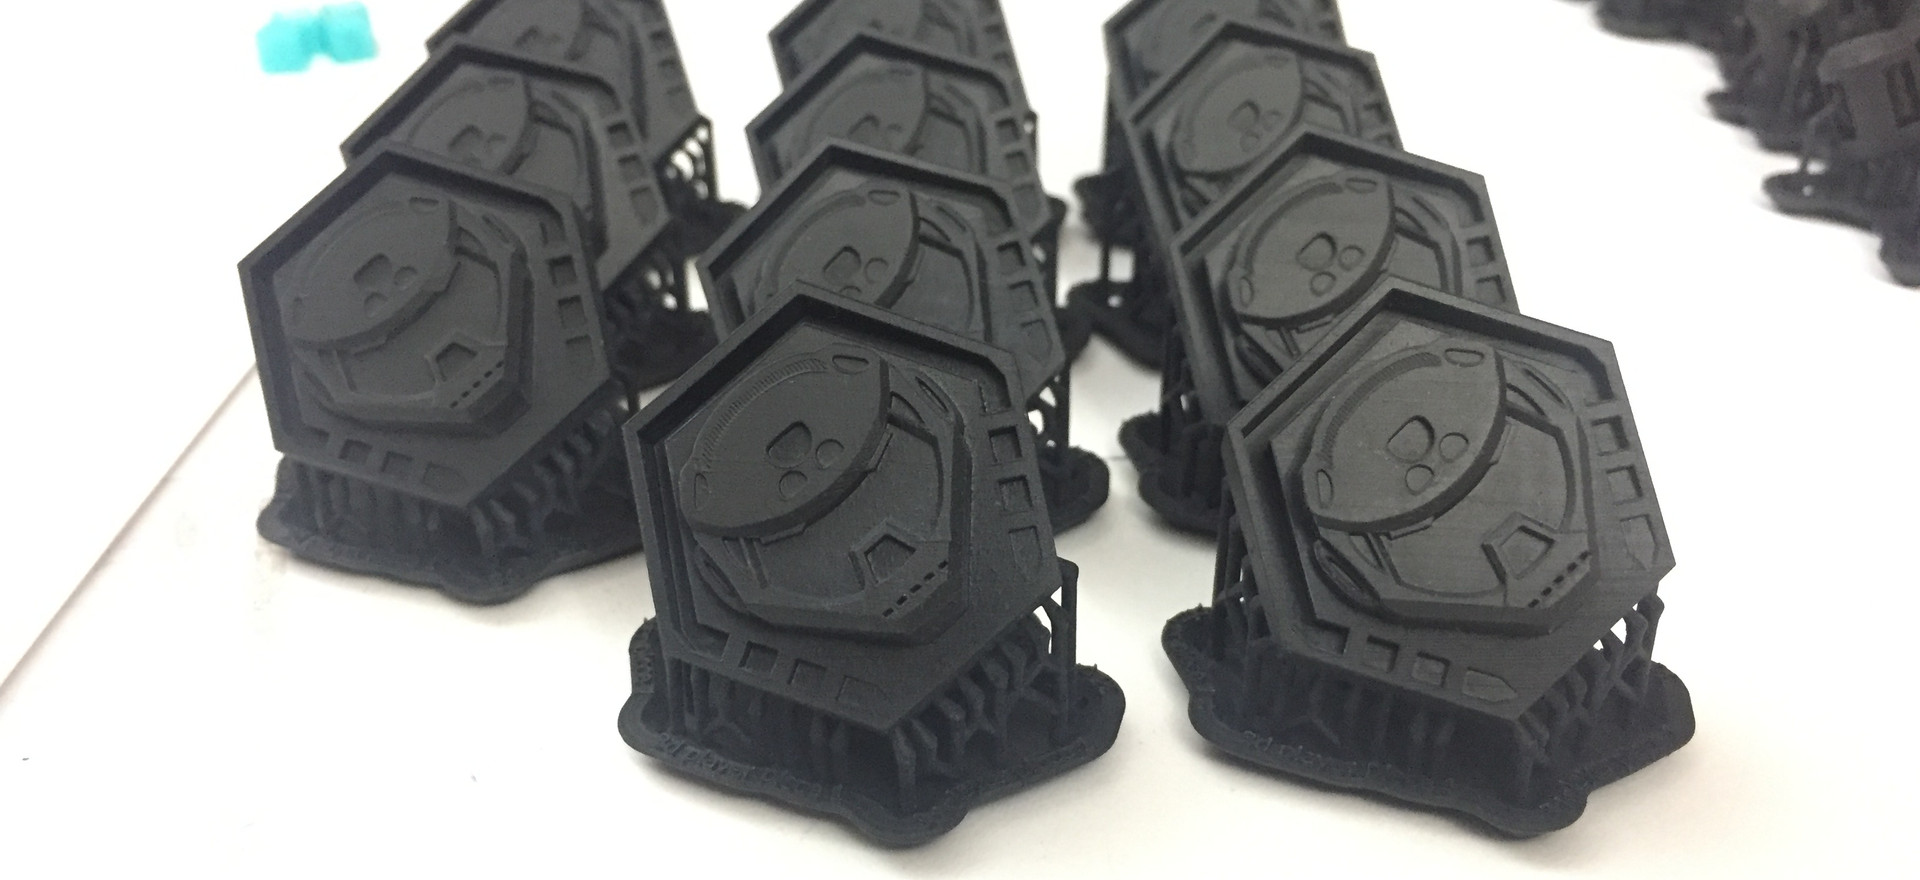 The first batch printed on the SLA.